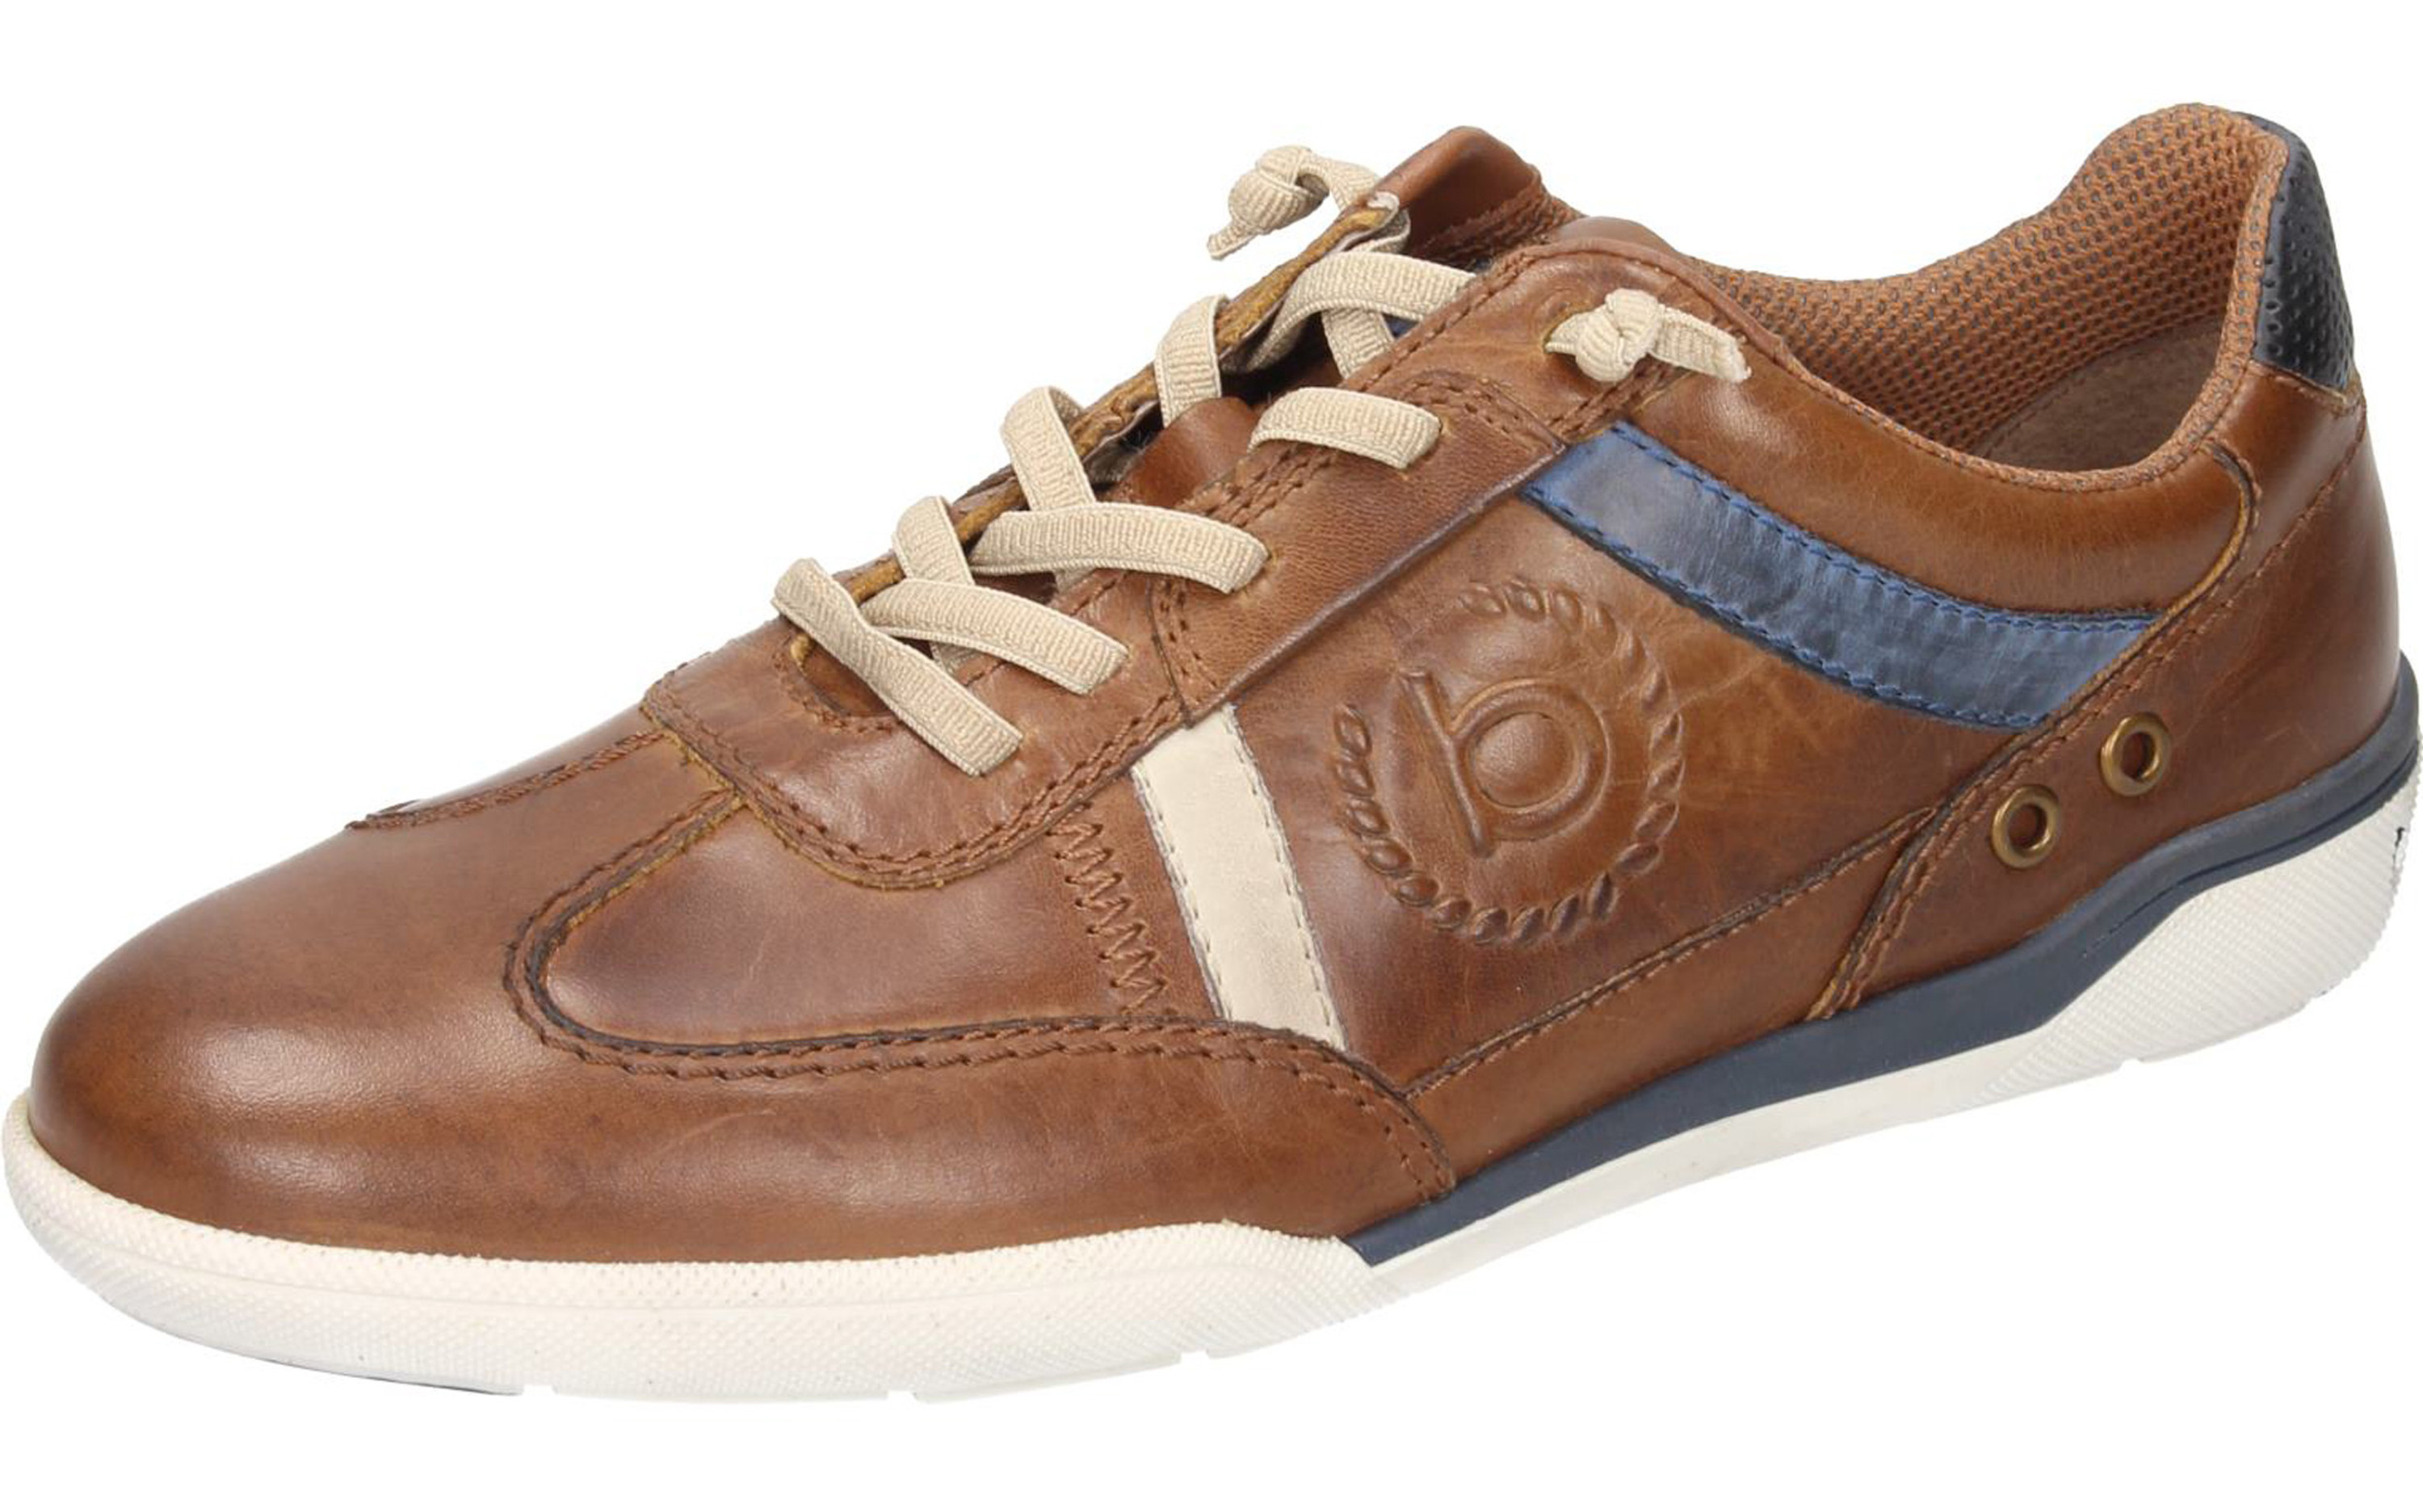 first rate 62db2 d7228 Bugatti Herren Sneaker cognac